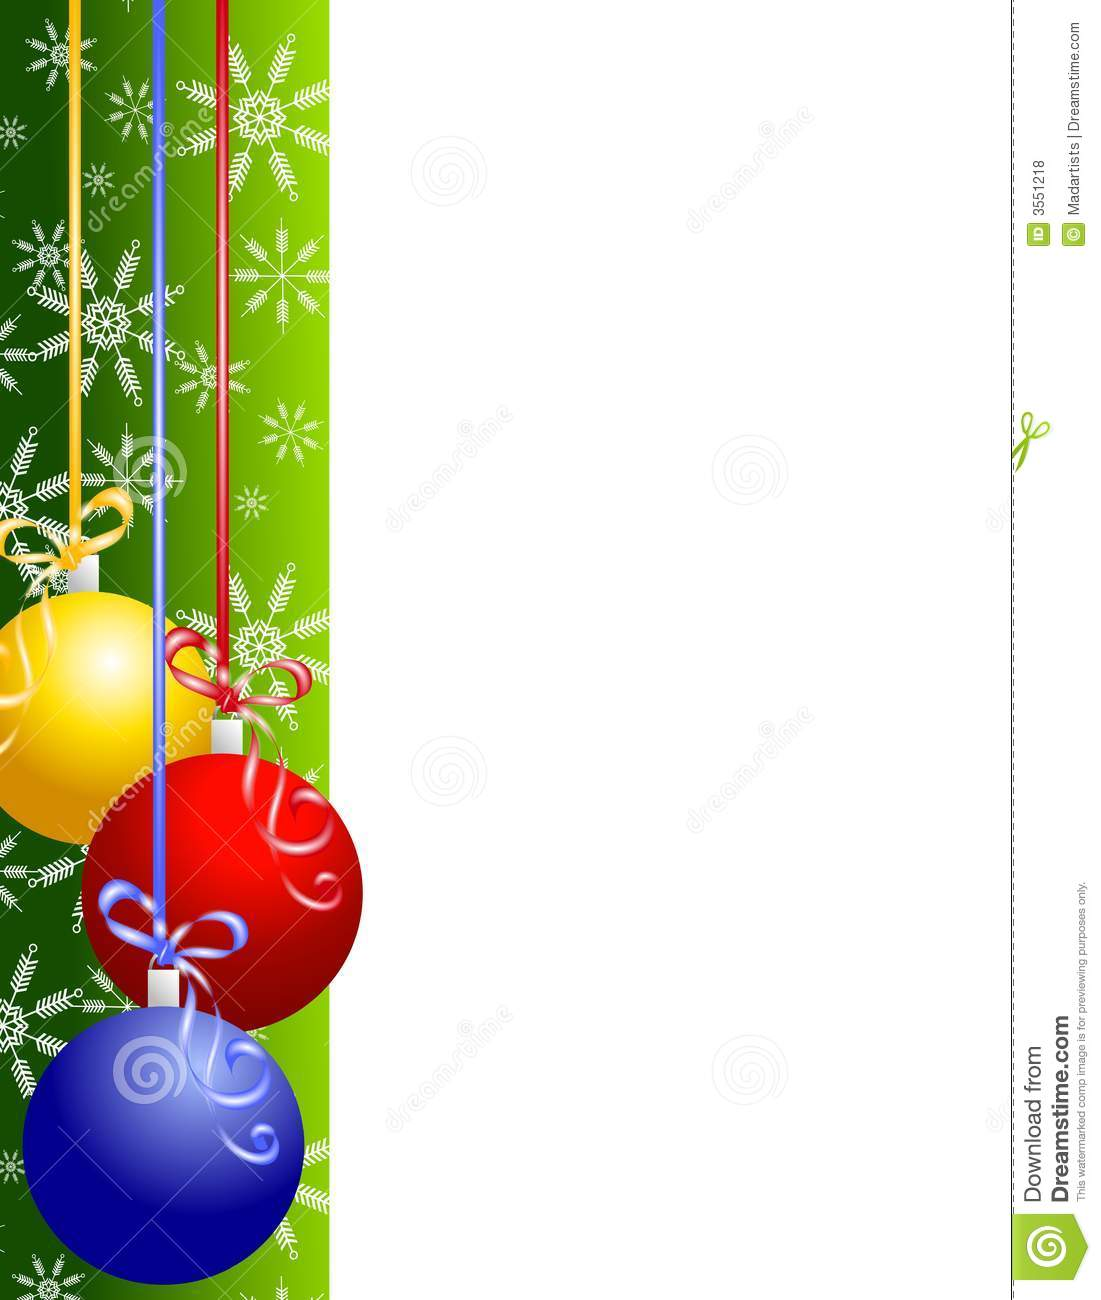 hight resolution of 1101x1300 free xmas clipart borders